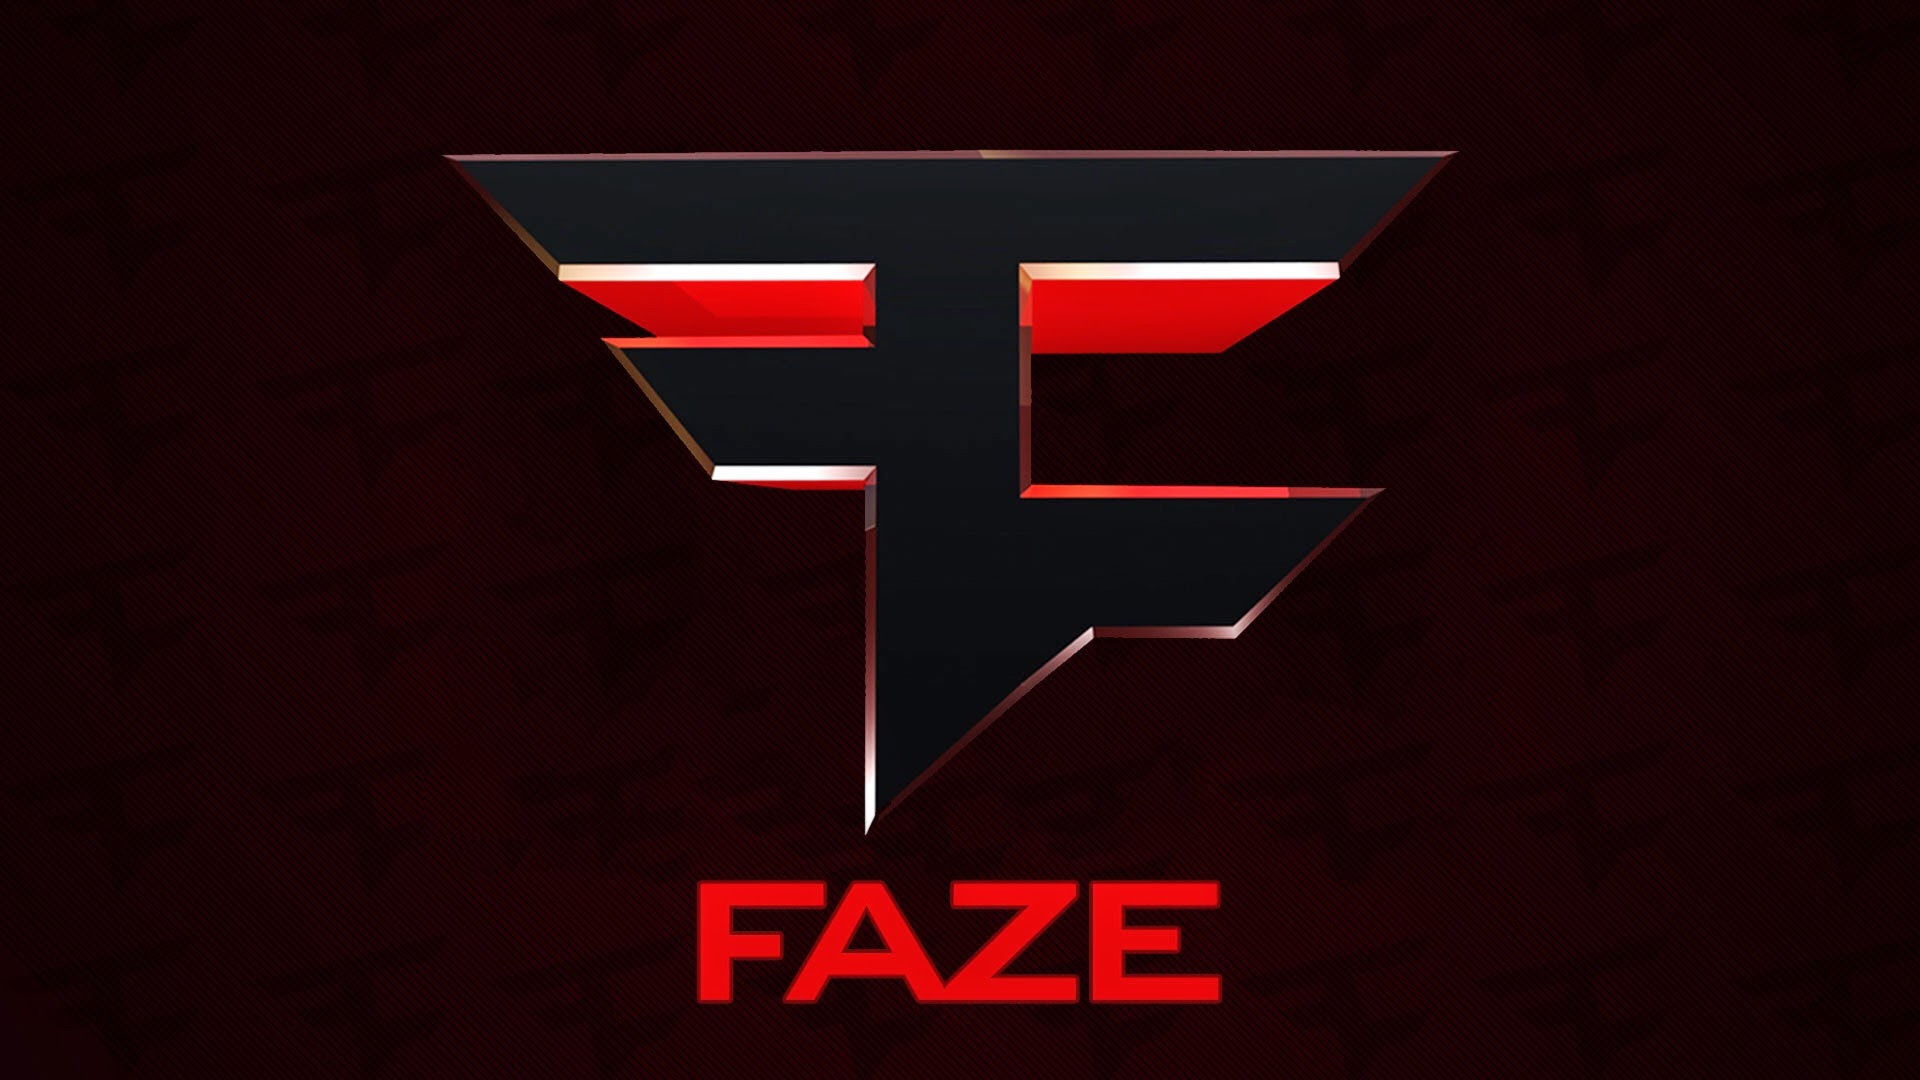 Download Faze Wallpaper Download Gallery